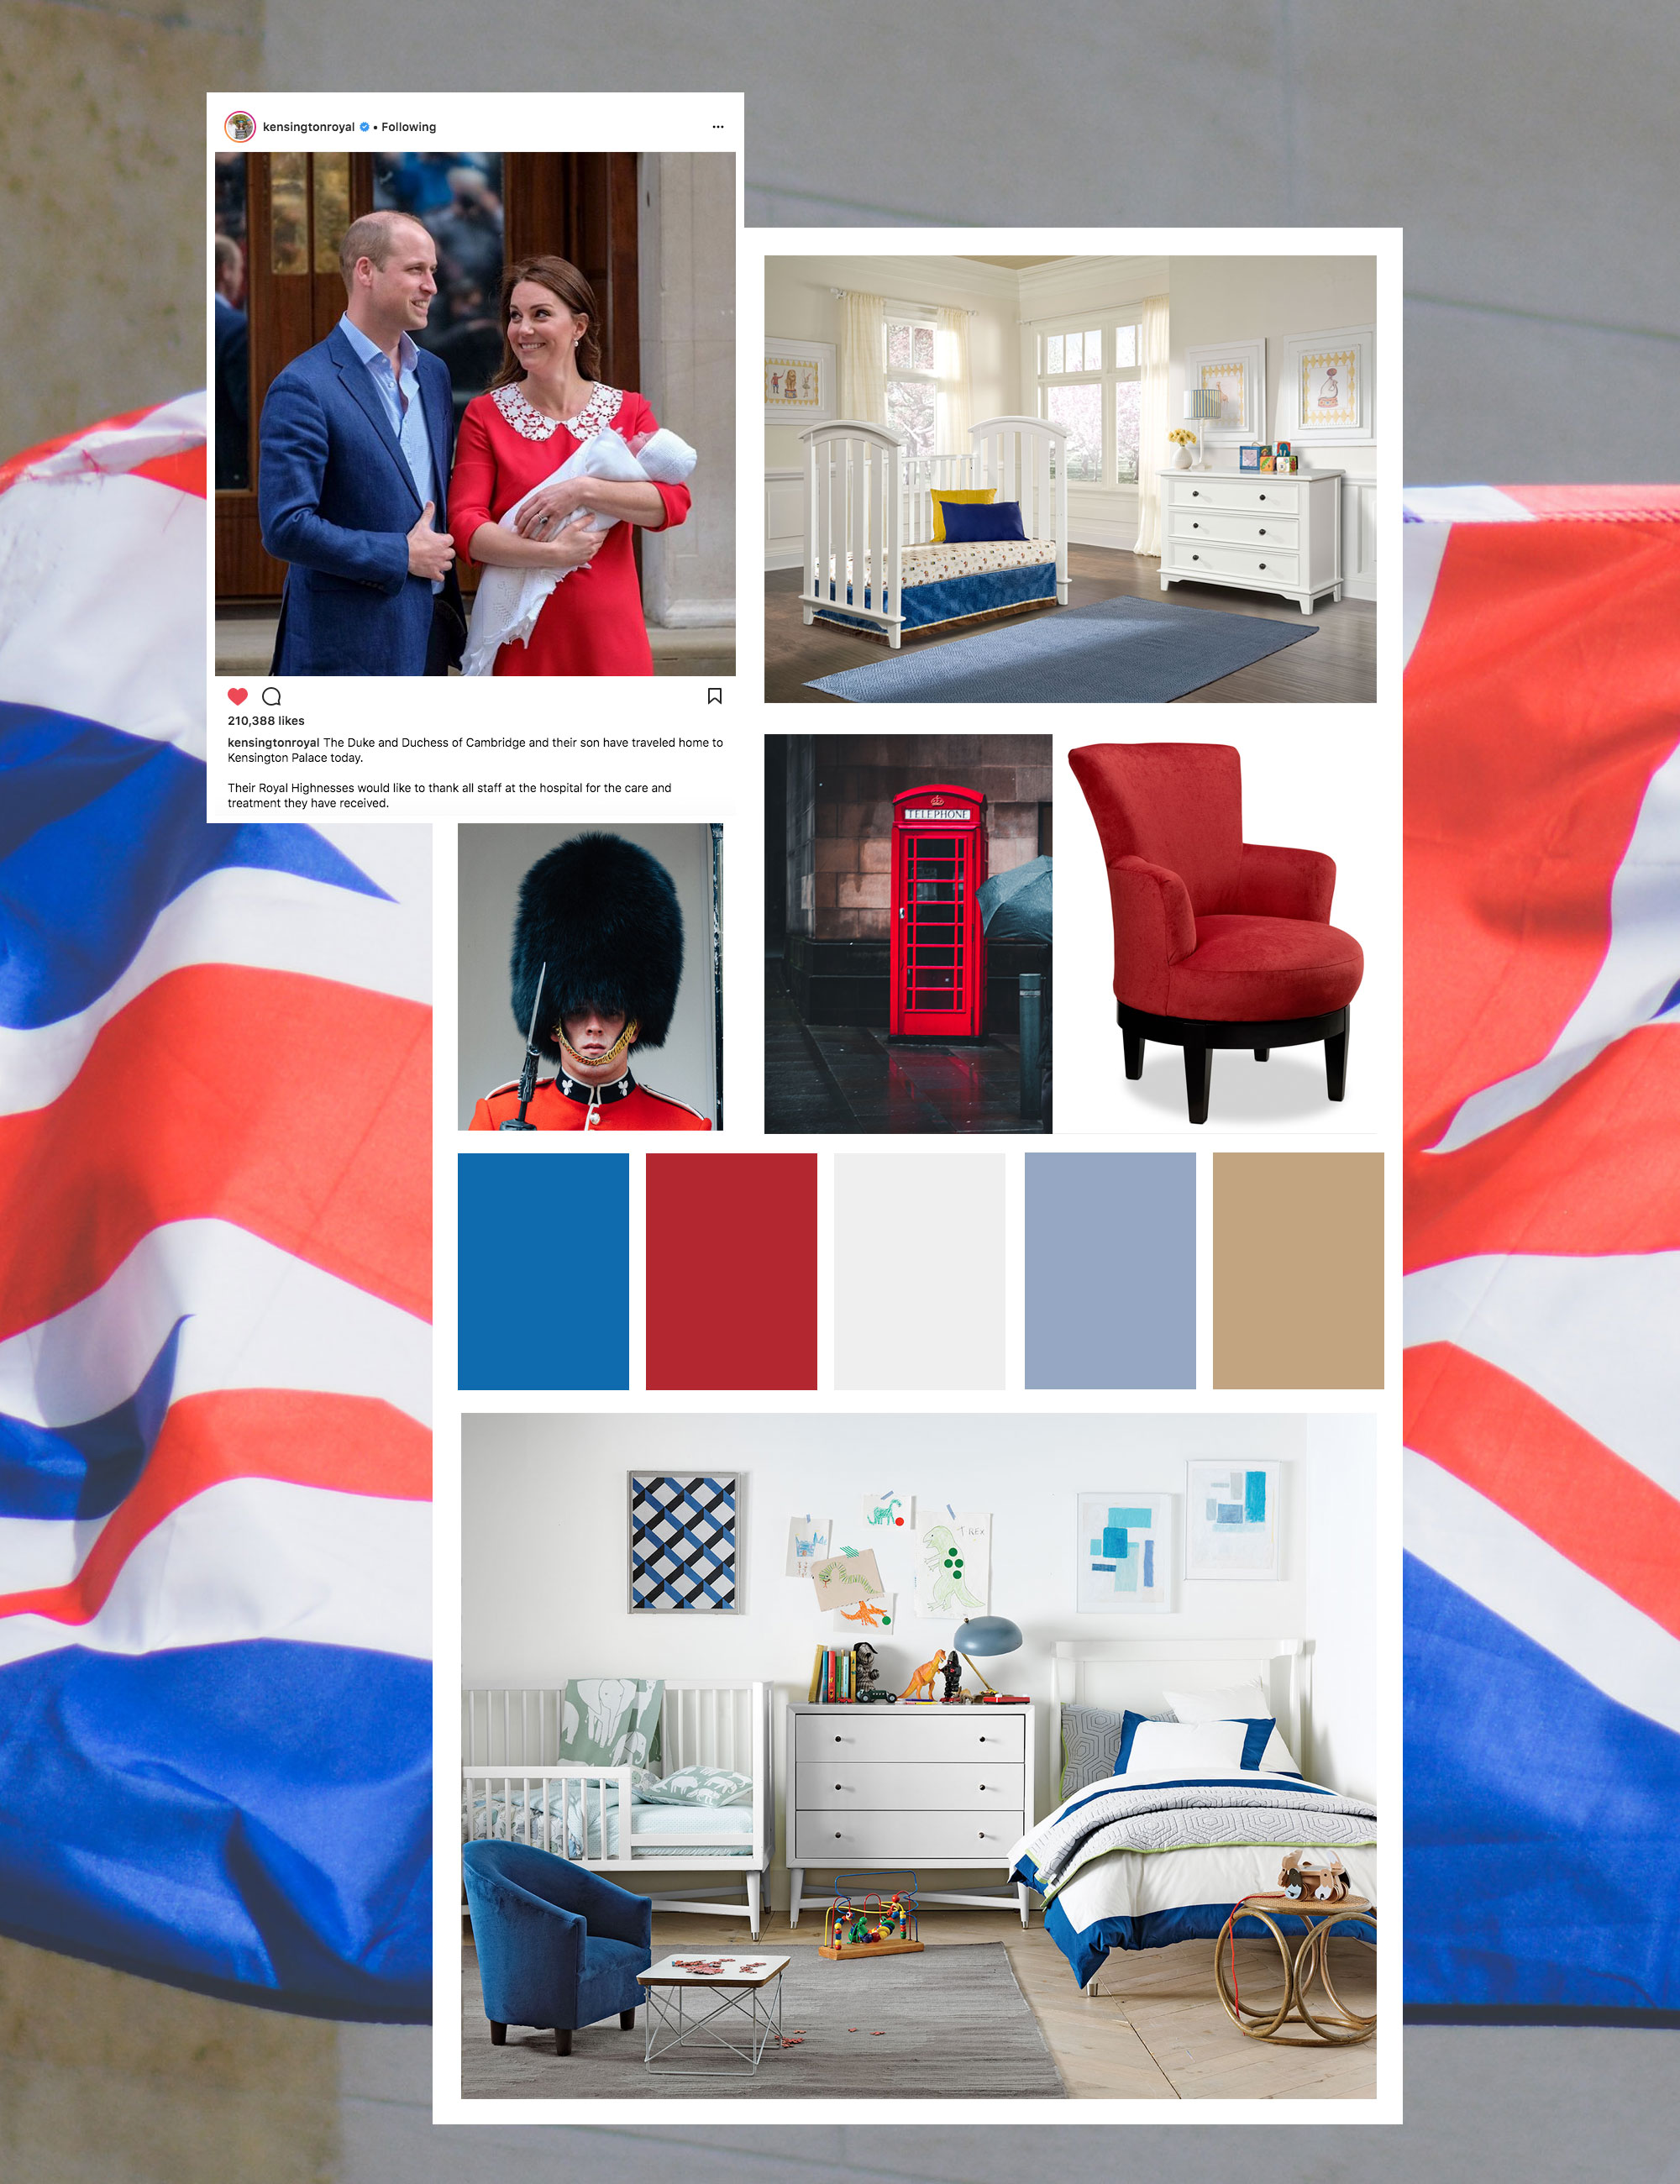 Prince Louis royal baby room decor inspiration mood board